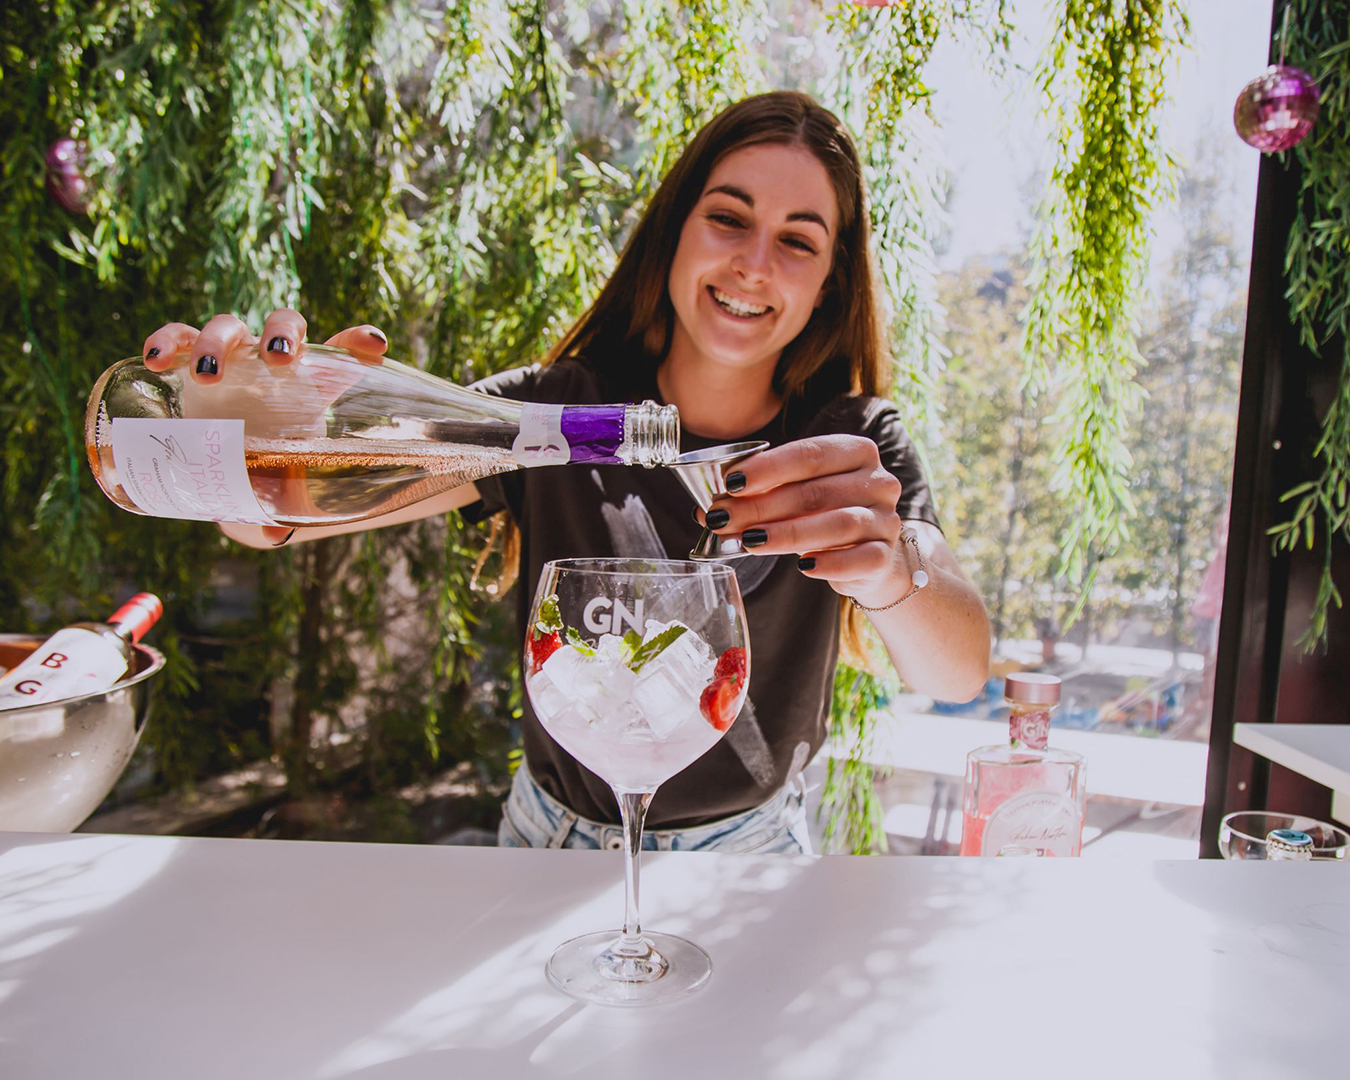 A woman prepares a delicious pink cocktail.